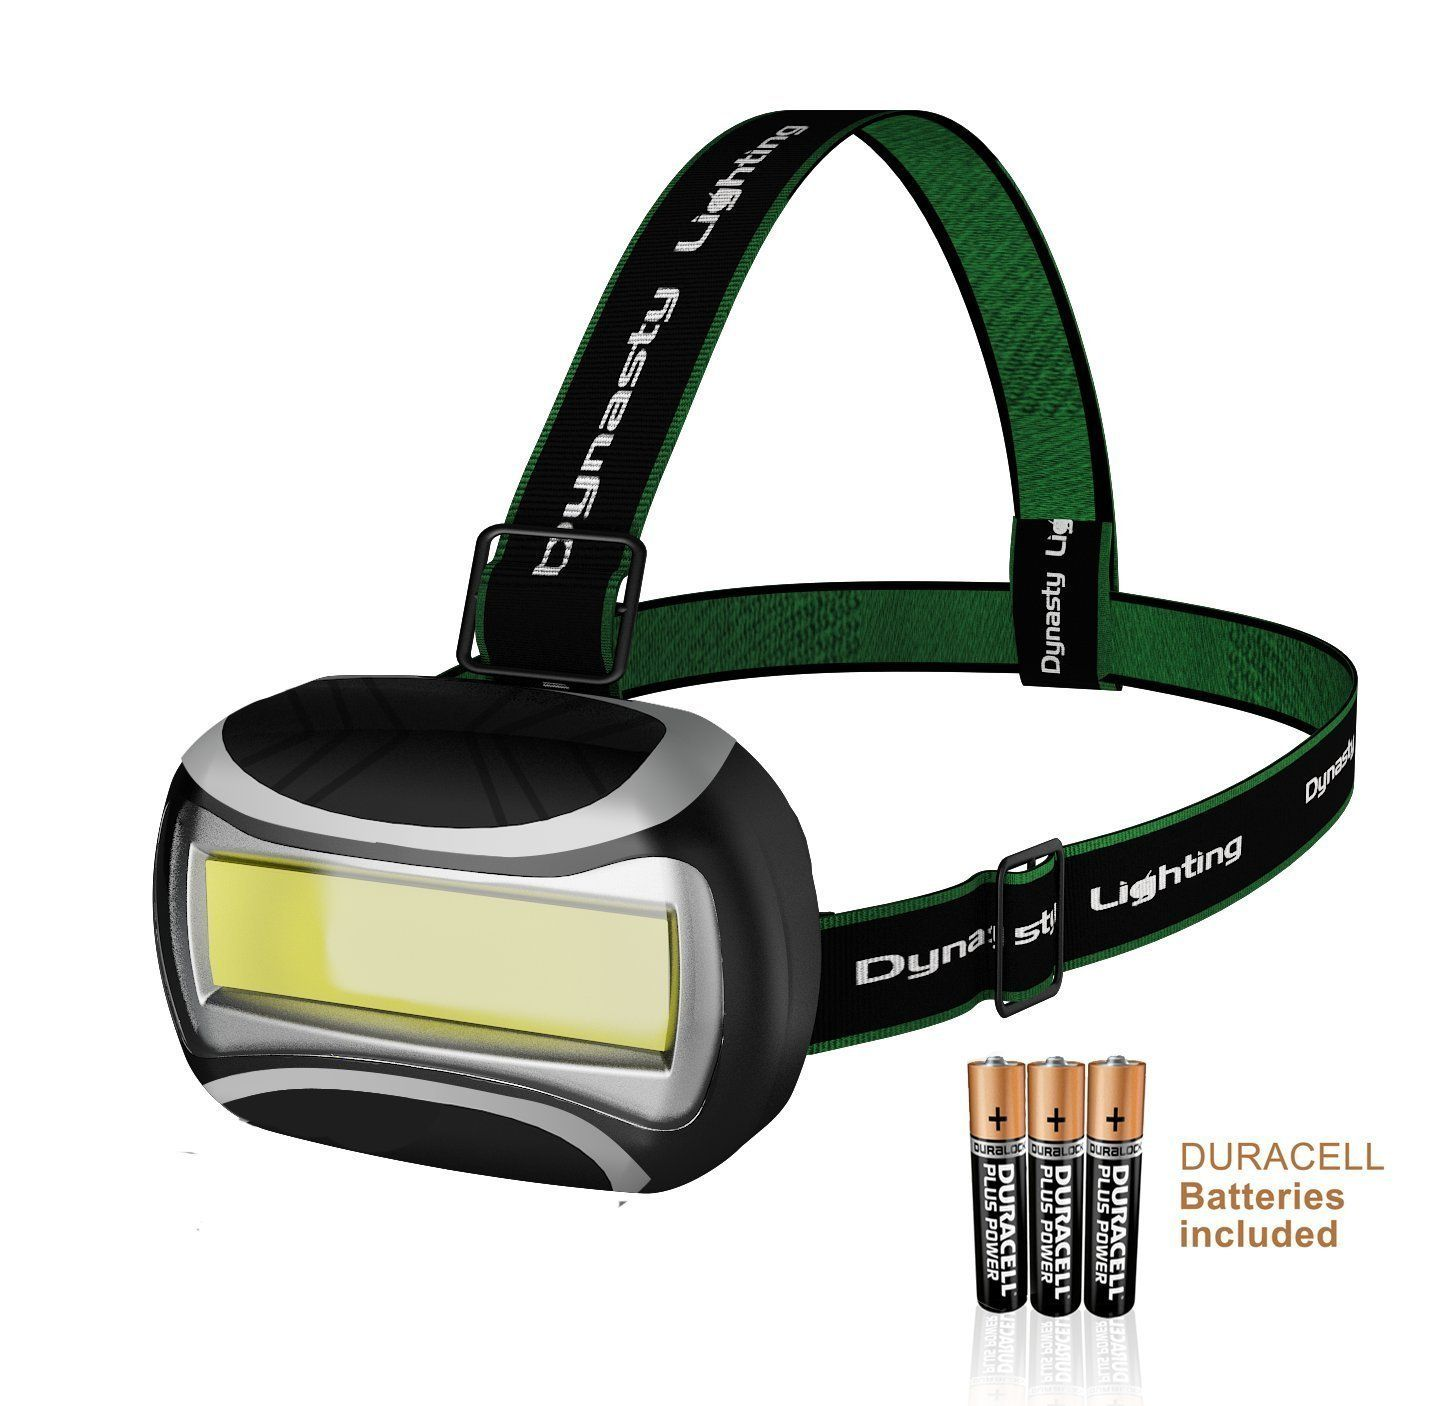 Best Cob Led Headlamp Torch By Lighting Dynasty Super Bright Head Mounted Led Torch With Adjustable Strap High Led Headlamp Camping Lights Adjustable Lighting